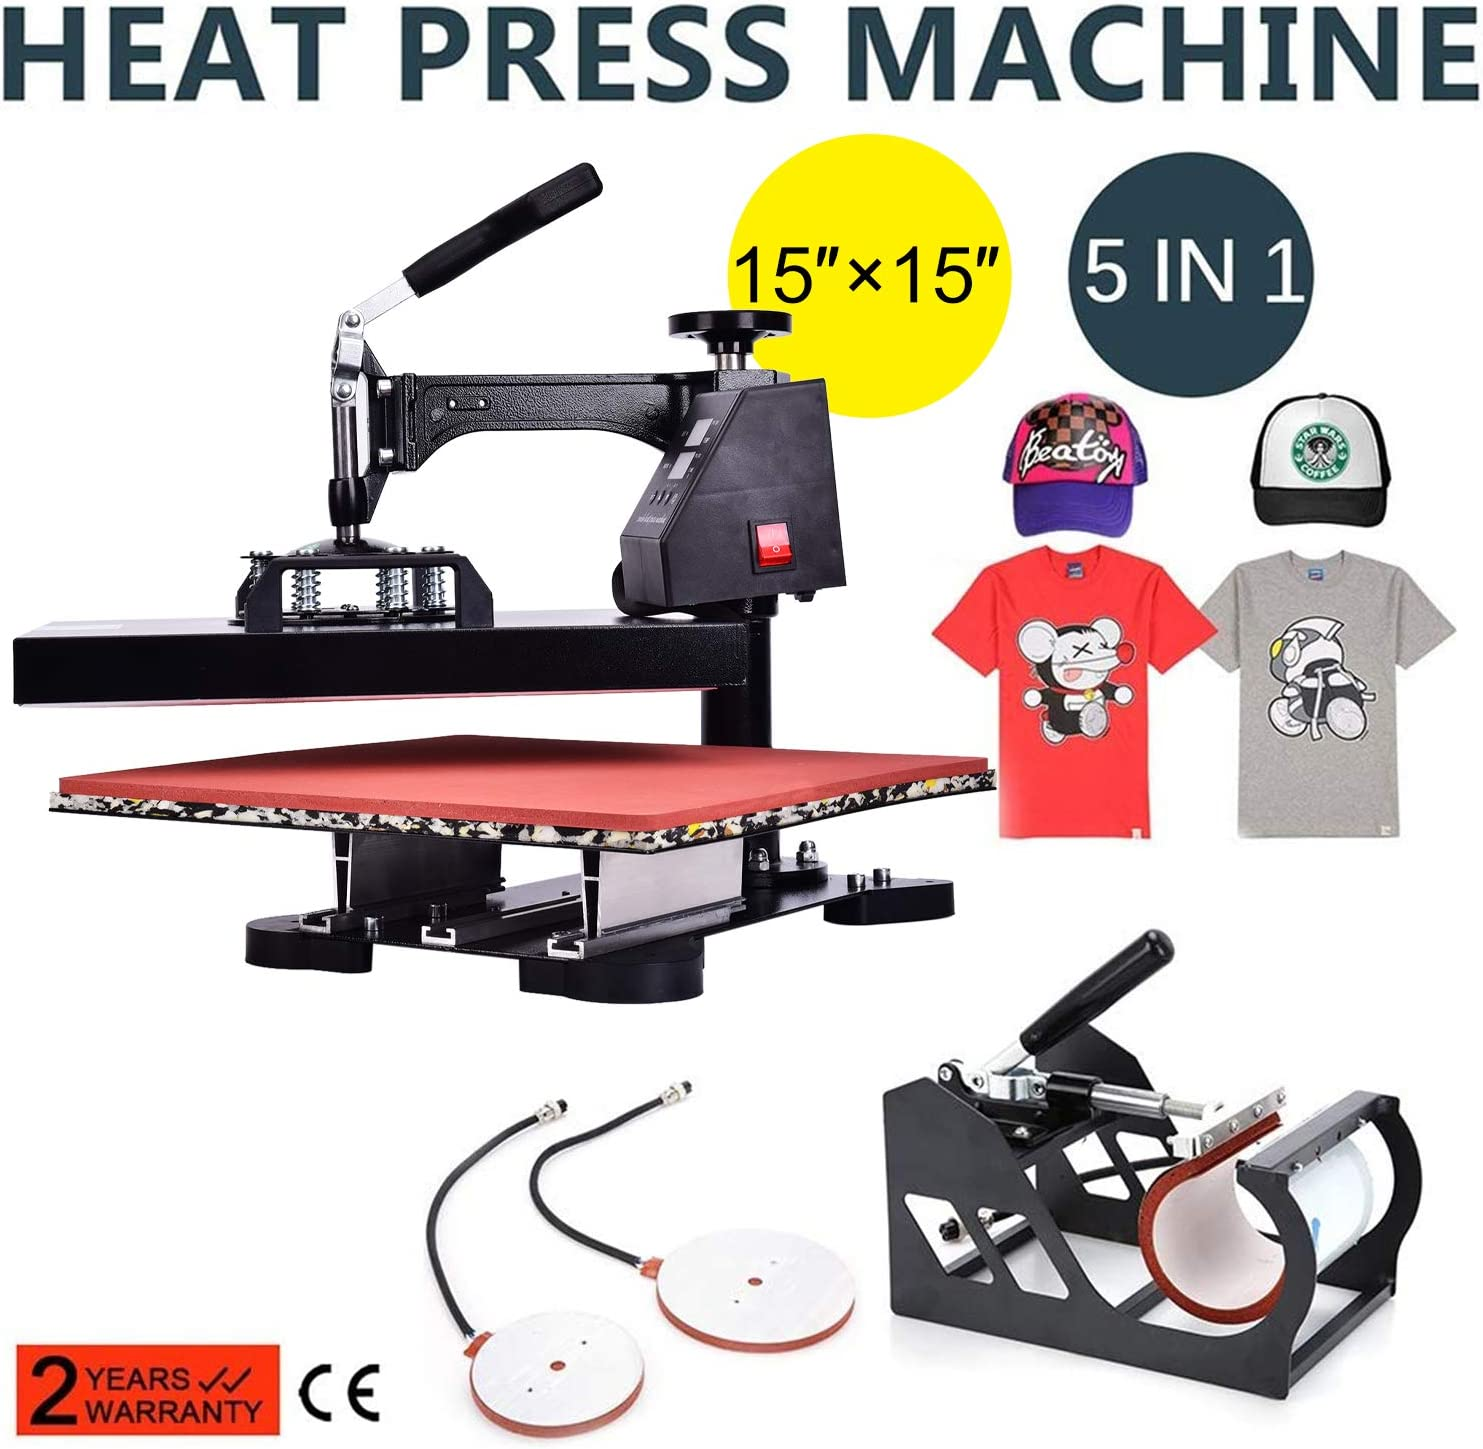 Which Is The Best 5x5 Dual Heating Element Press